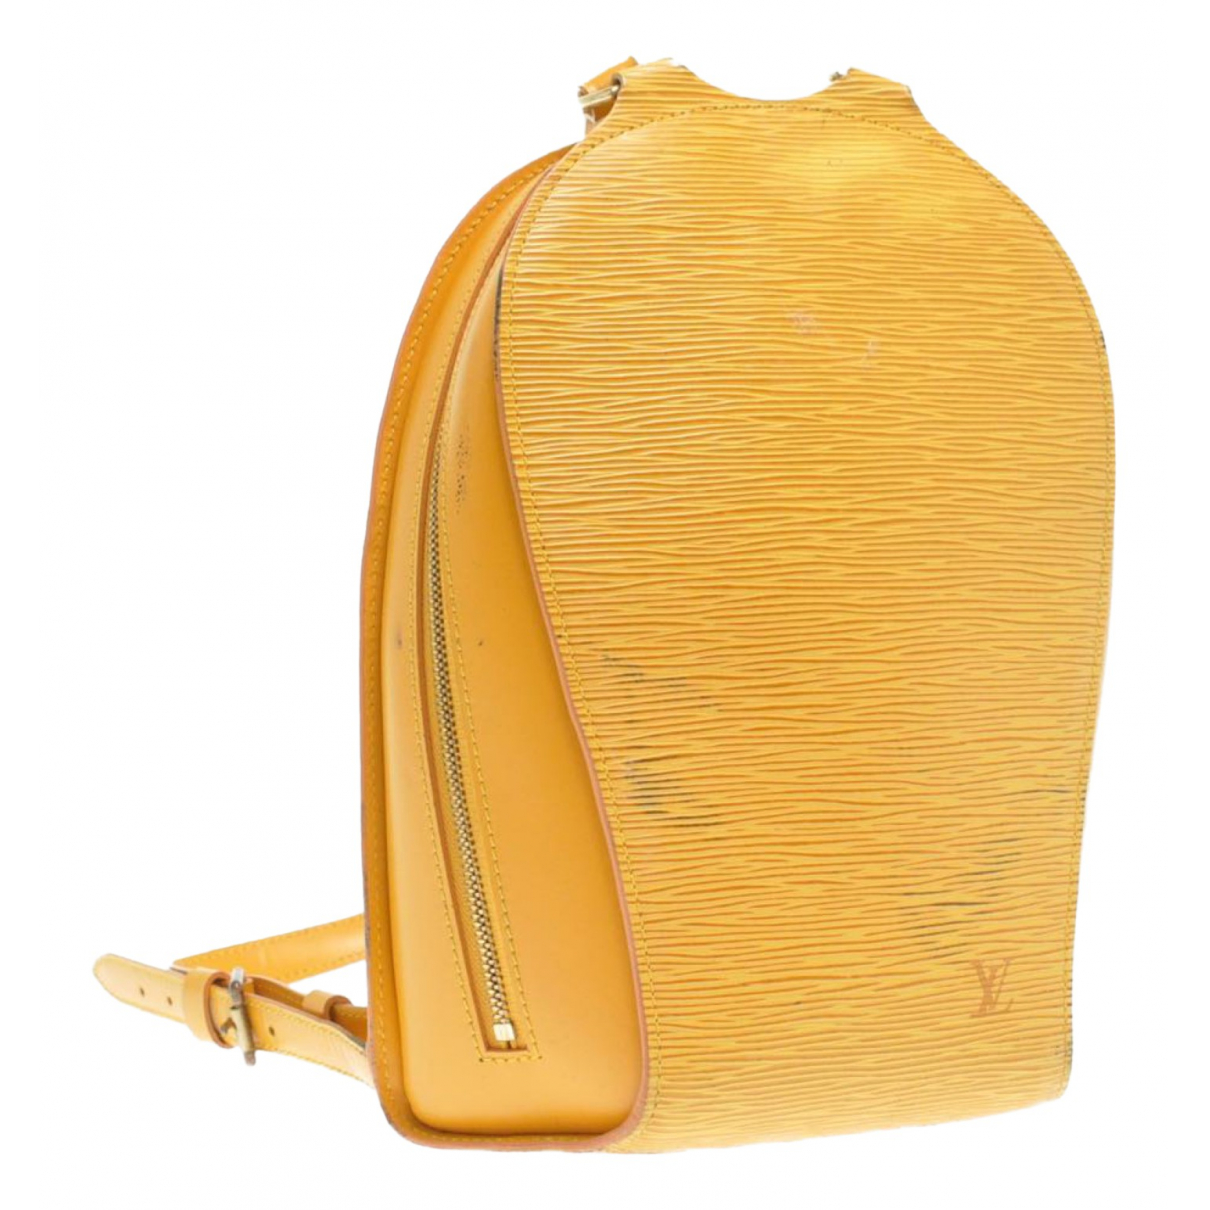 Louis Vuitton N Yellow Leather backpack for Women N